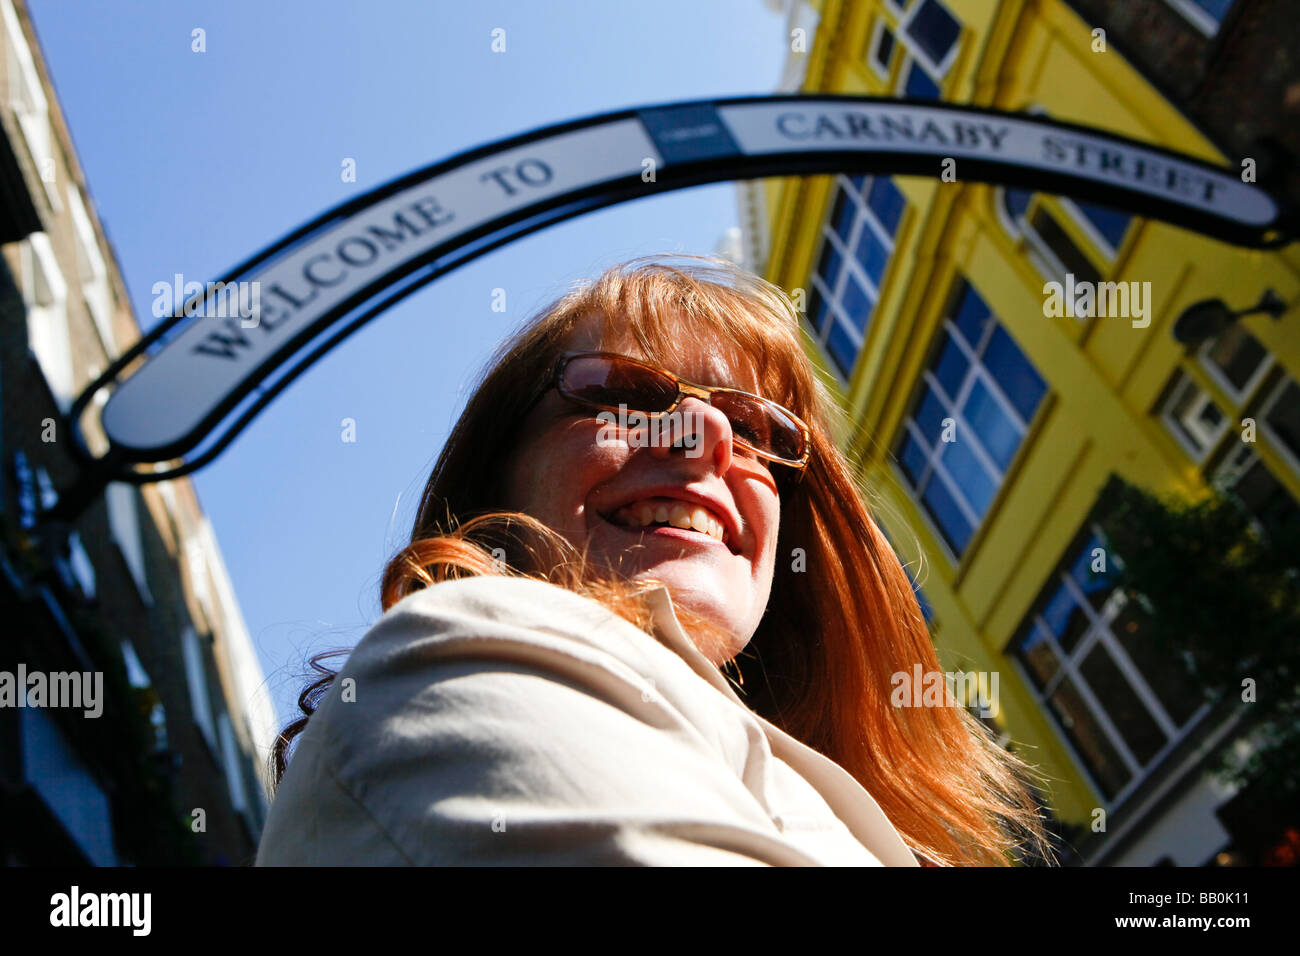 Woman with red hair on Carnaby Street London. - Stock Image